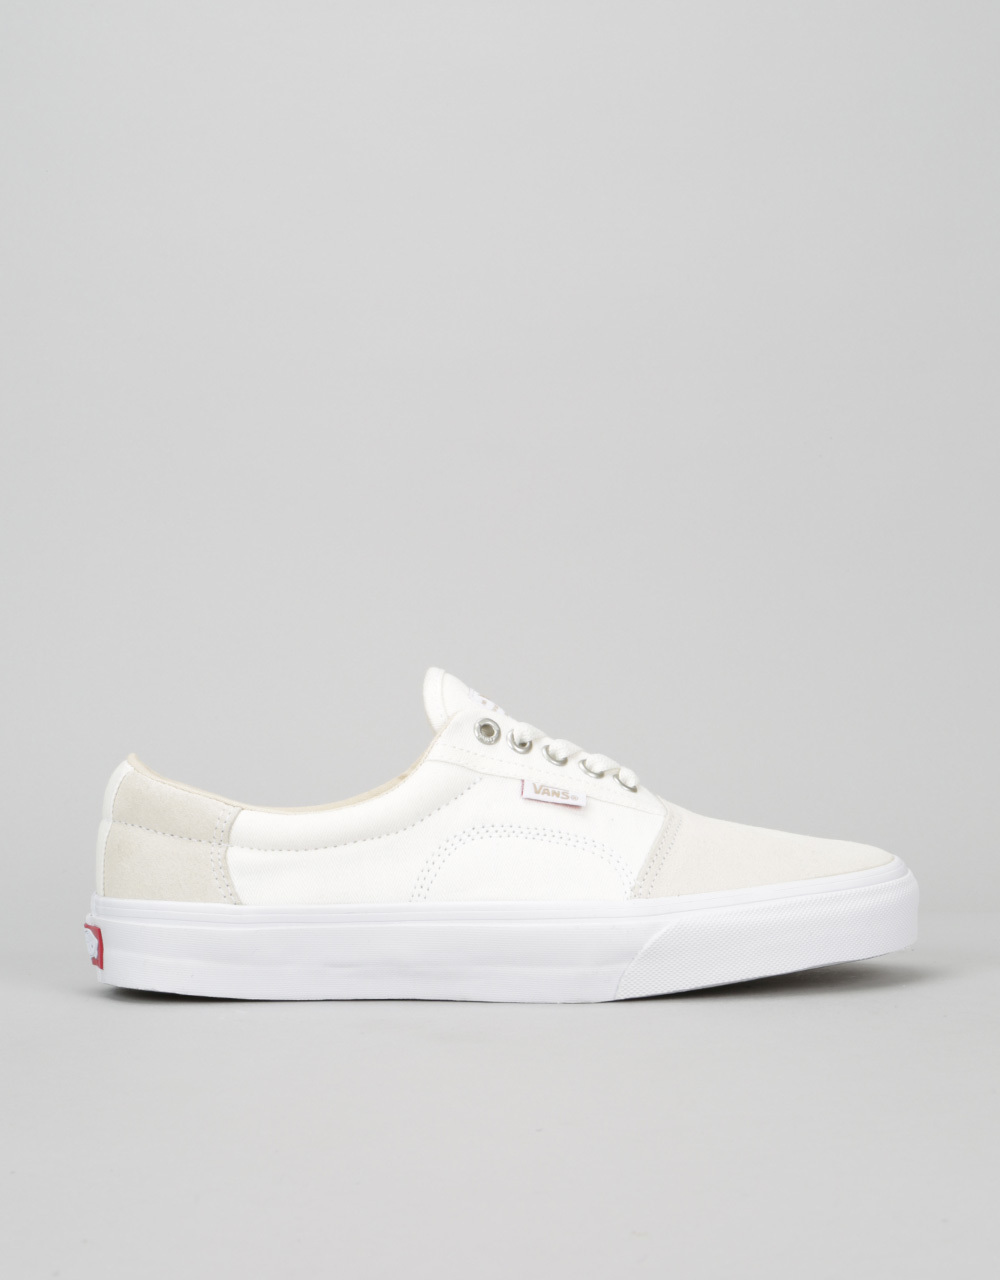 25ebc6830a0002 Vans Rowley Solos Pro Skate Shoes - (Herringbone) White